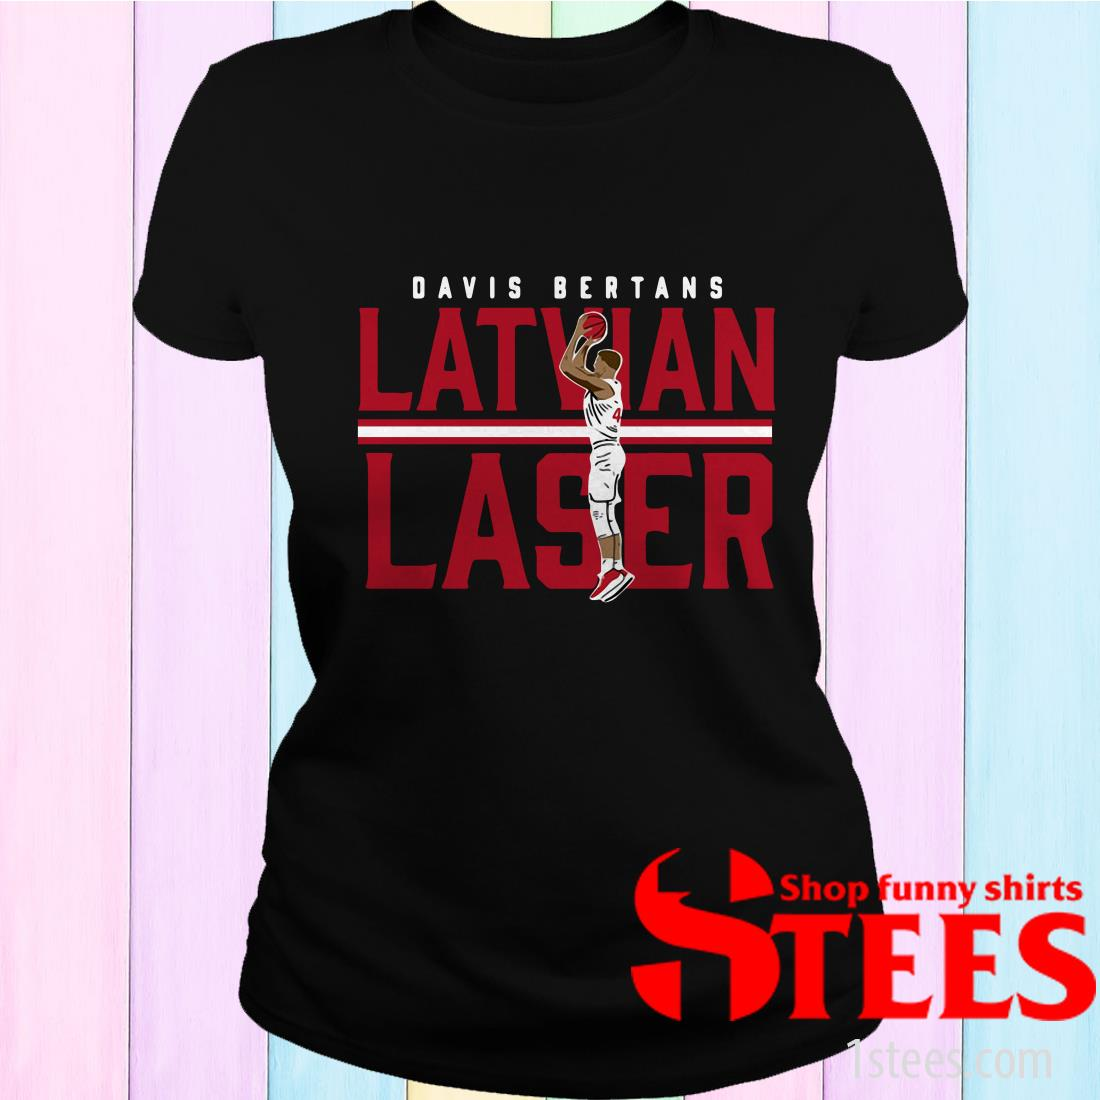 Davis Bertans Latvian Laser T-Shirt